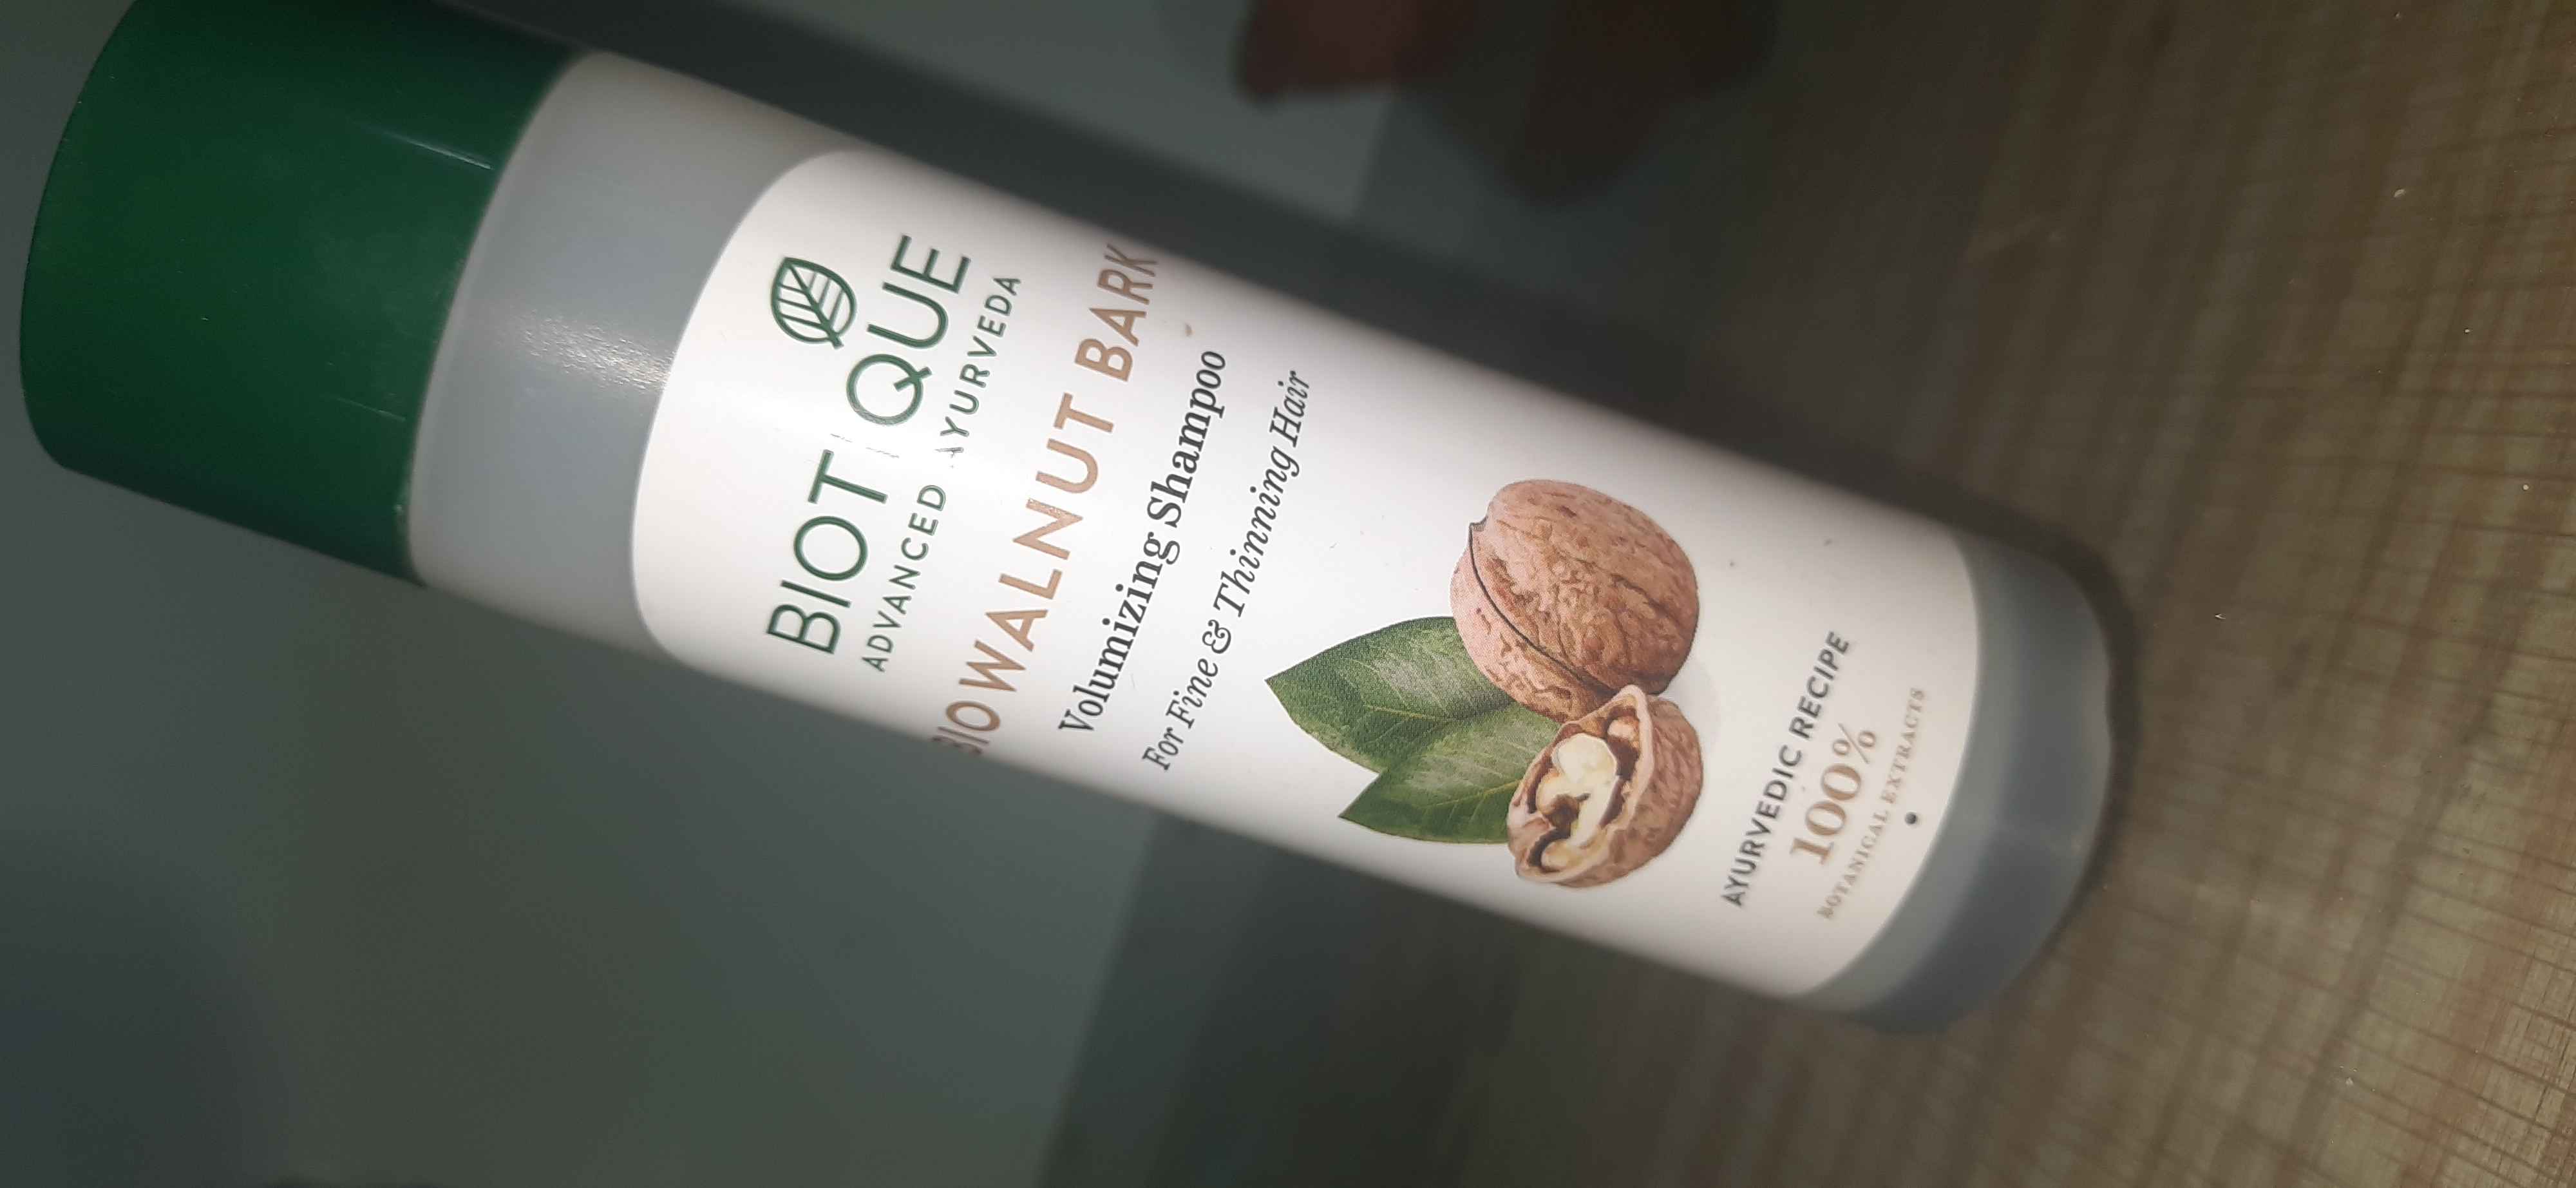 Biotique Bio Walnut Bark Volumizing Shampoo For Fine & Thinning Hair -Love the fragrance and it works-By mansishimpi